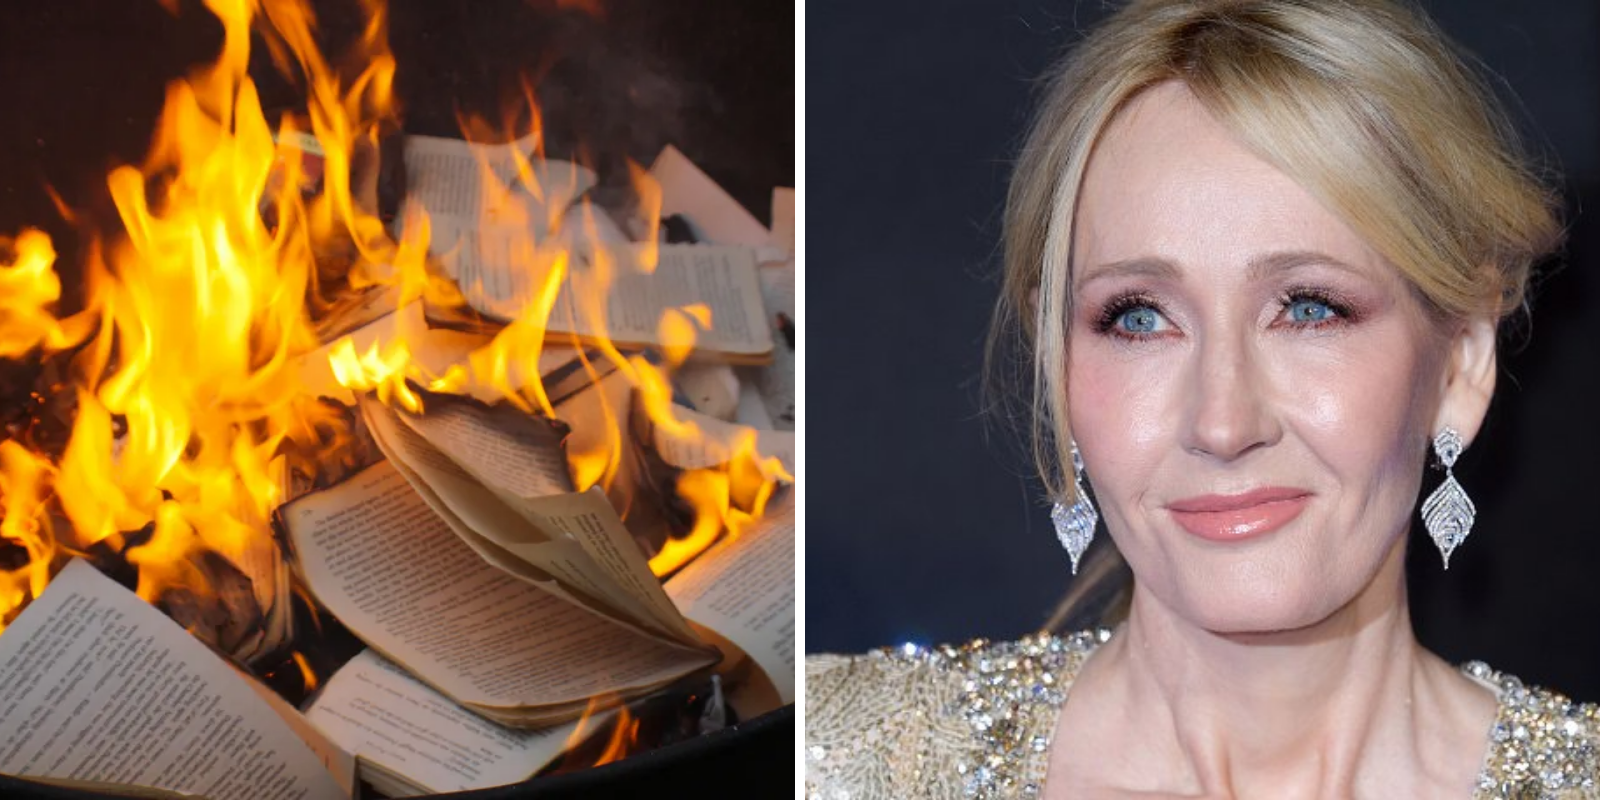 Celebrities and activists call for JK Rowling's books to be burned